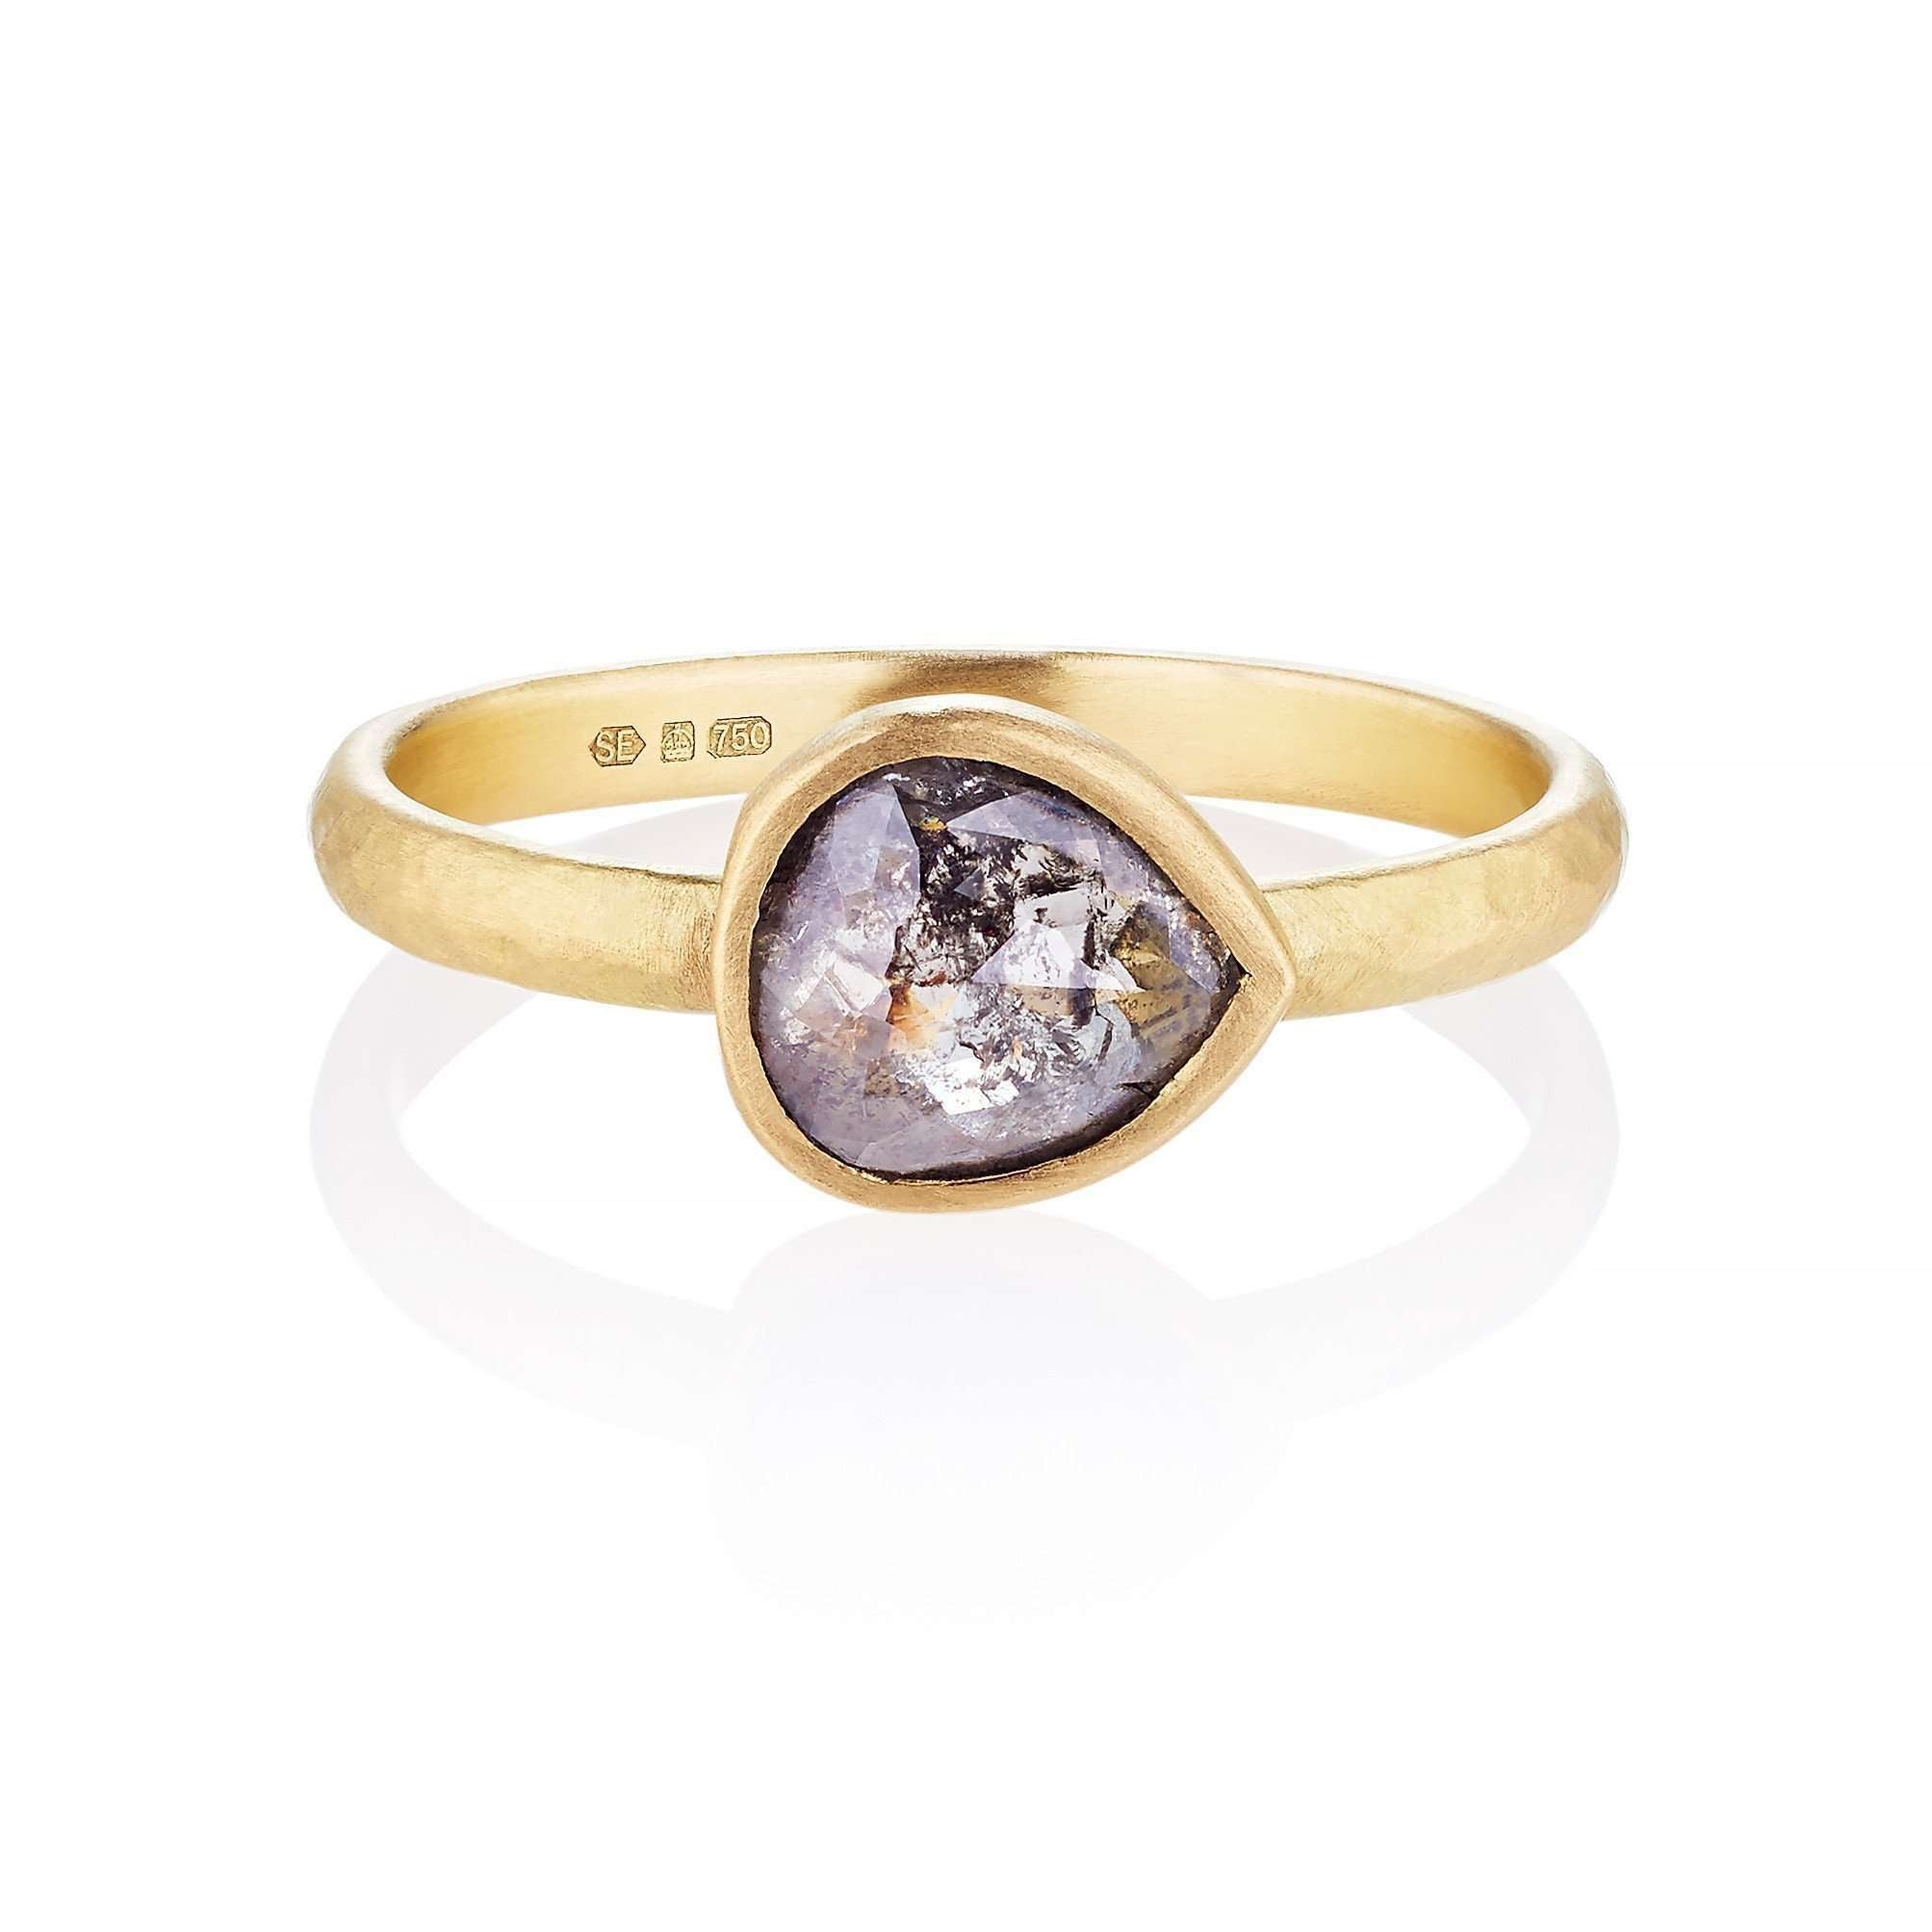 Neola Stacking Gold Ring - UK P - US 7 1/2 - EU 56 1/2 d34voMkO88